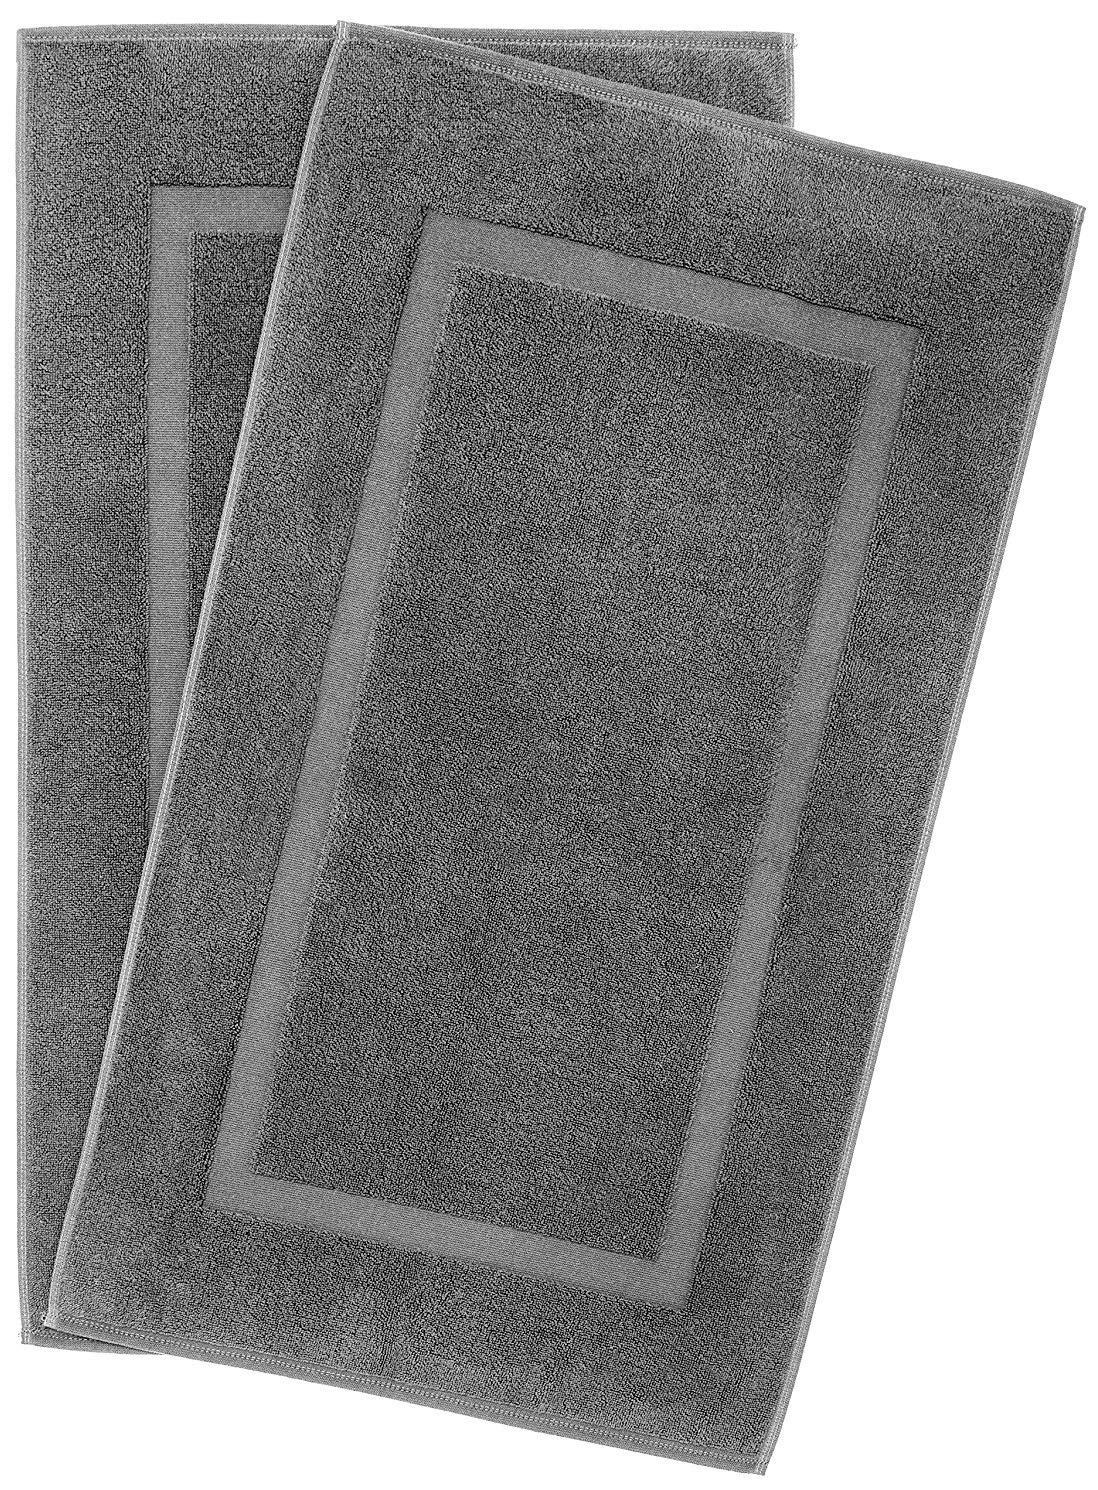 900 GSM Machine Washable 20x34 Inches 2-Pack Banded Bath Mats, Luxury Hotel and Spa Quality, 100% Ring Spun Genuine Cotton, Maximum Softness and Absorbency by United Home Textile, Charcoal Grey by Cotton Paradise